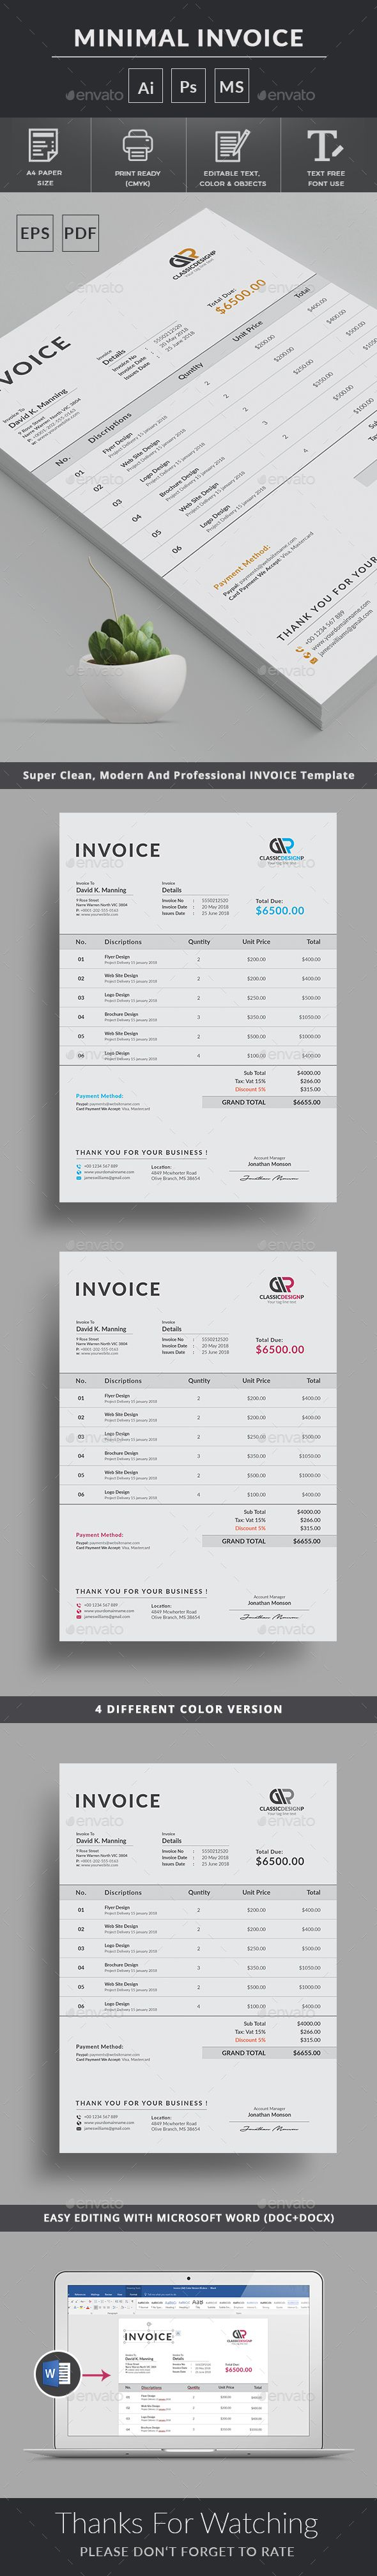 Create An Invoice In Excel Endearing Invoice  Pinterest  Template Corporate Identity And Proposal .